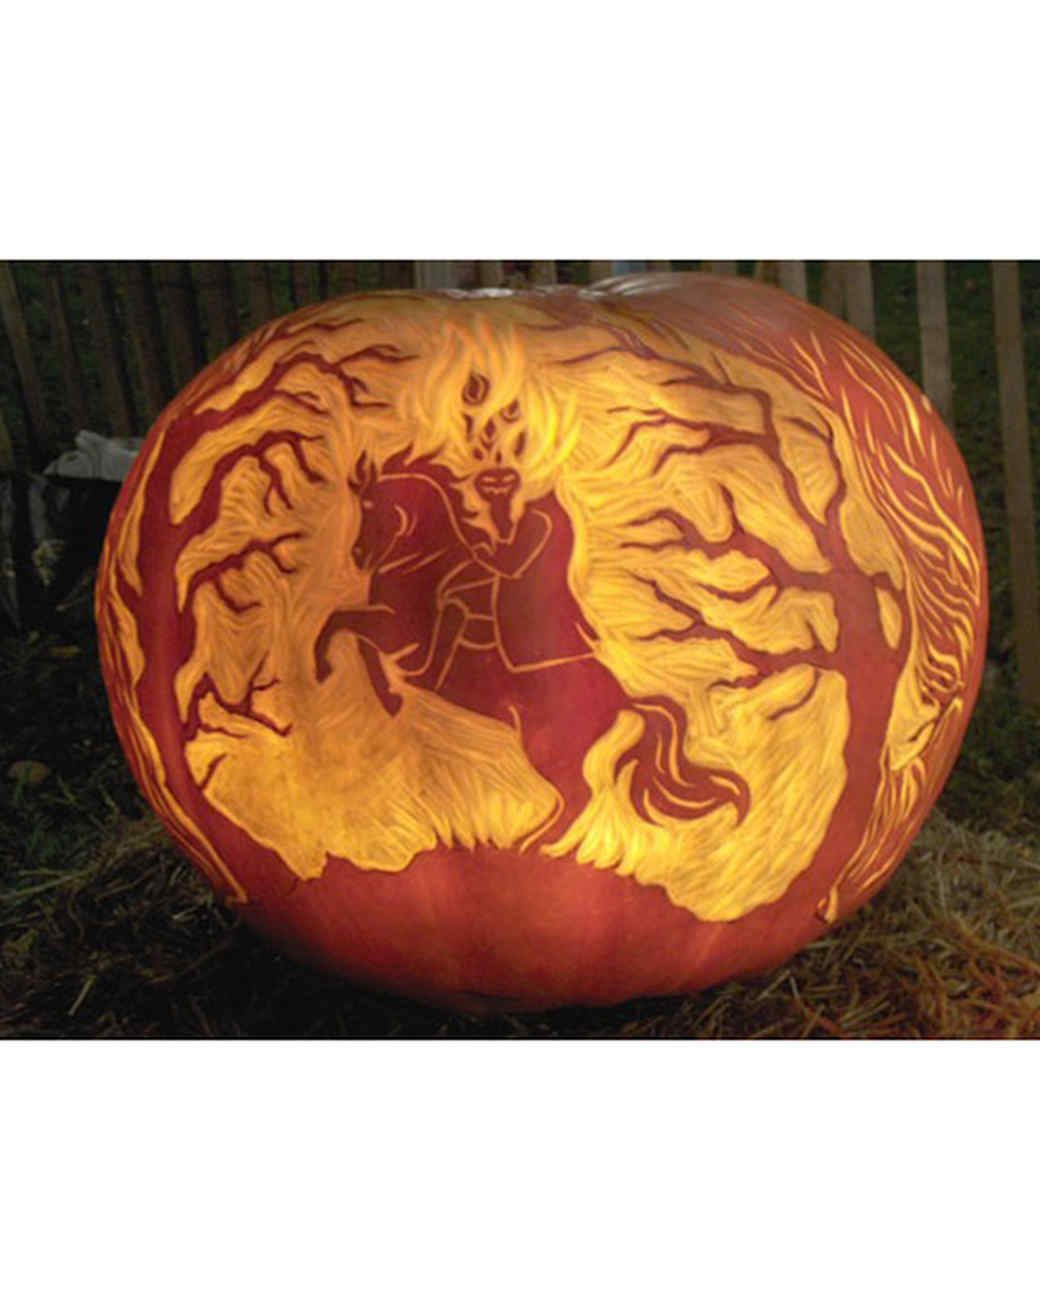 Your pumpkincarving projects pumpkin carving ideas pinterest